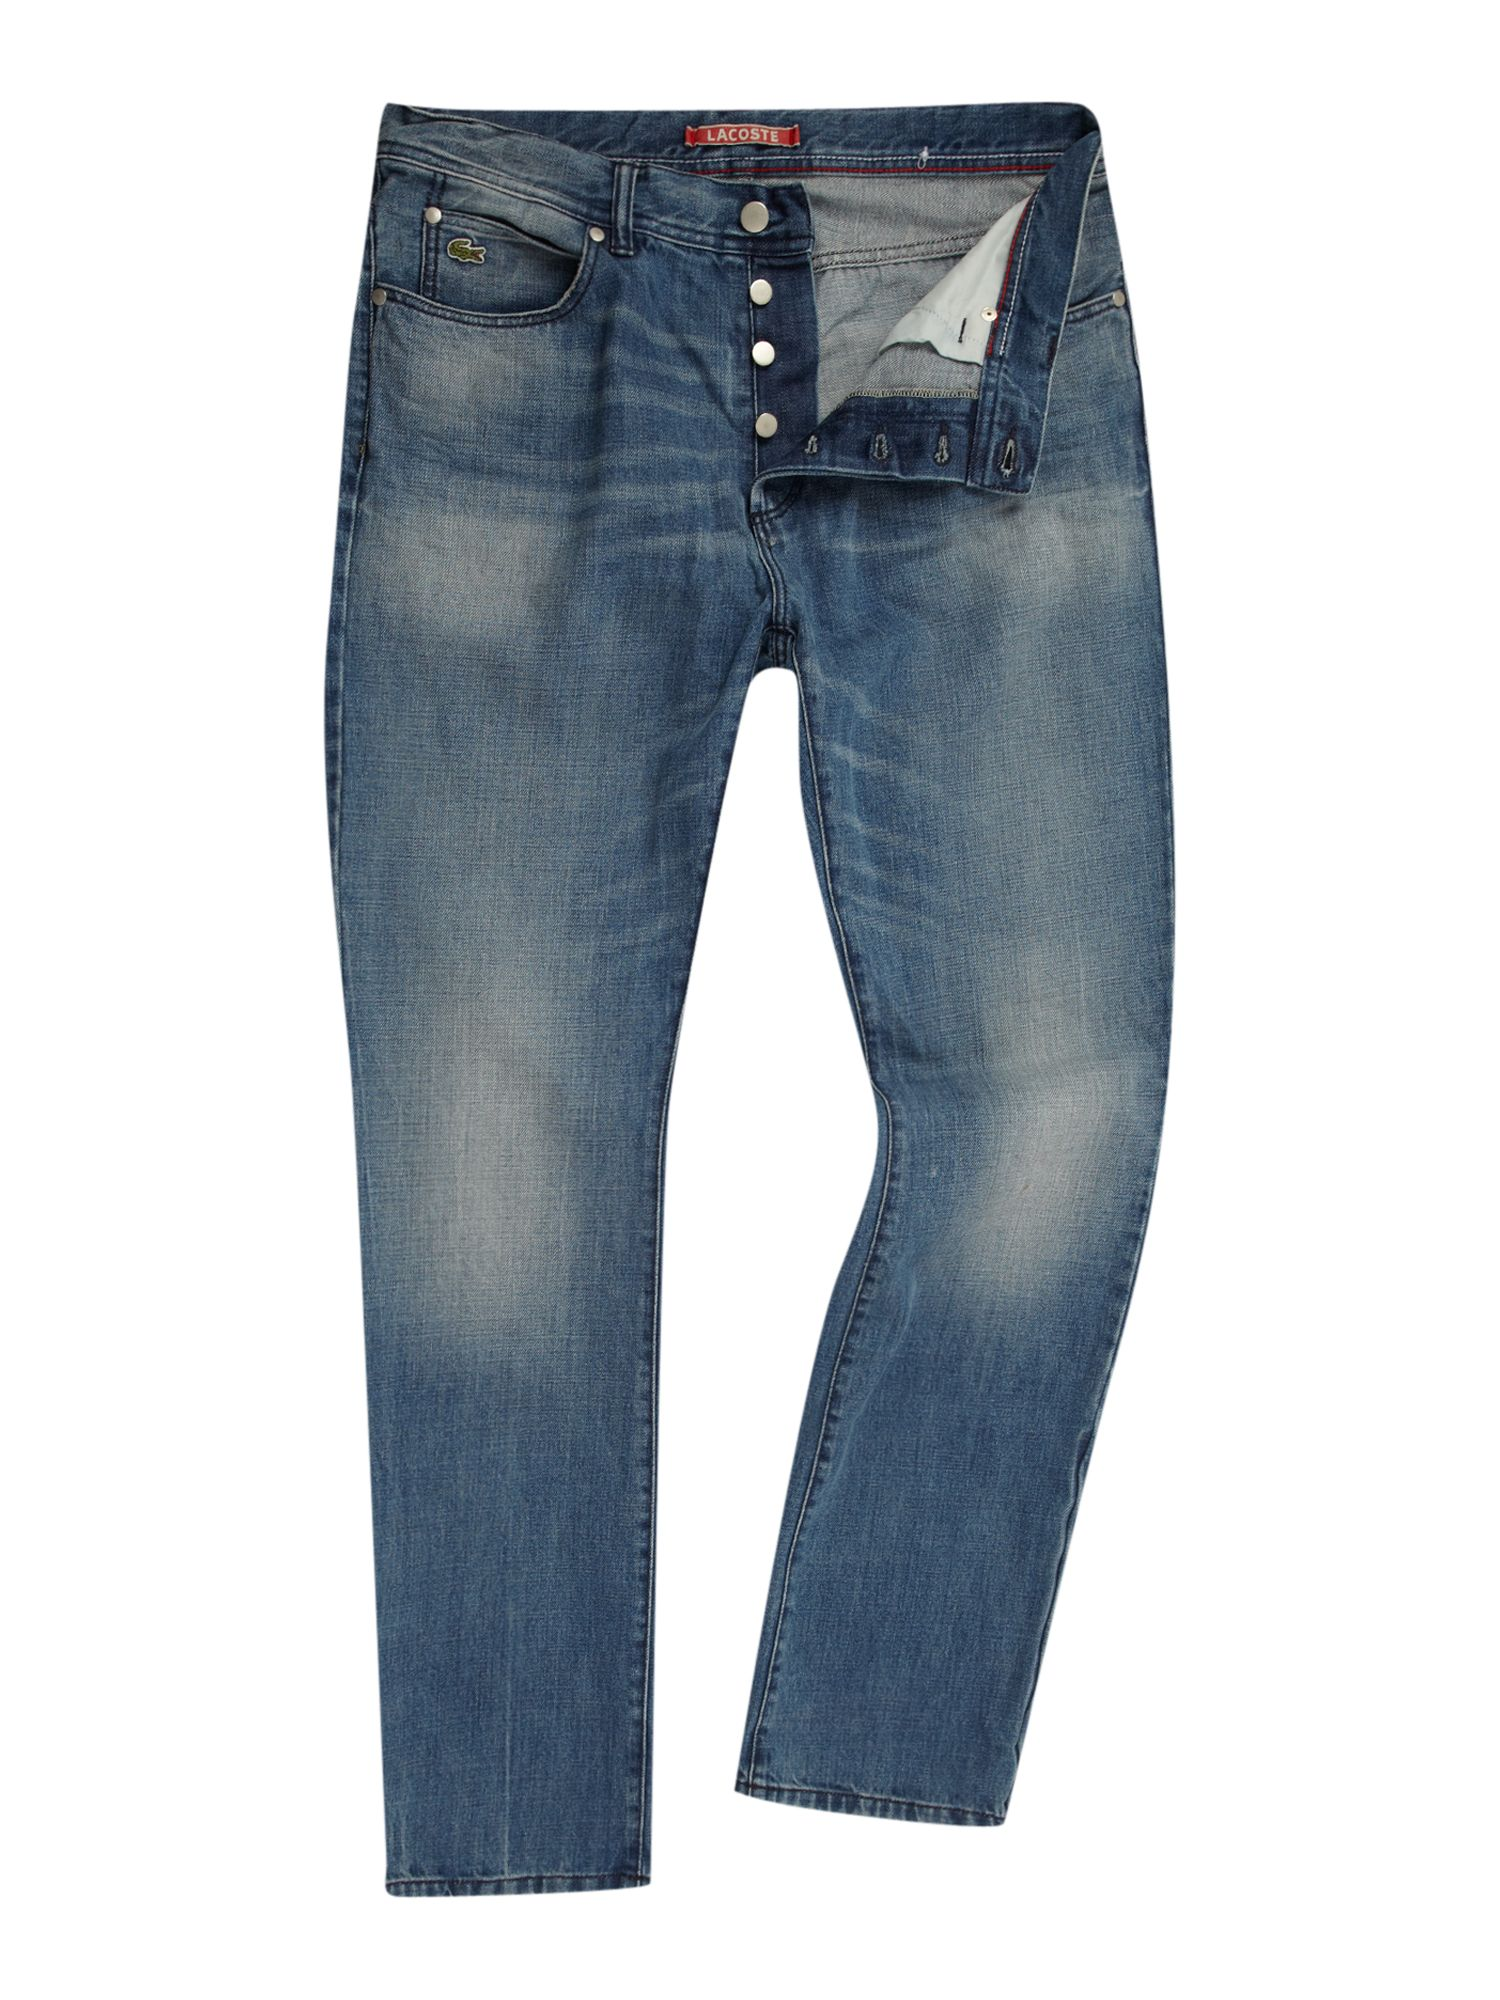 Lacoste Live Slim Fitted Jeans In Blue For Men Denim